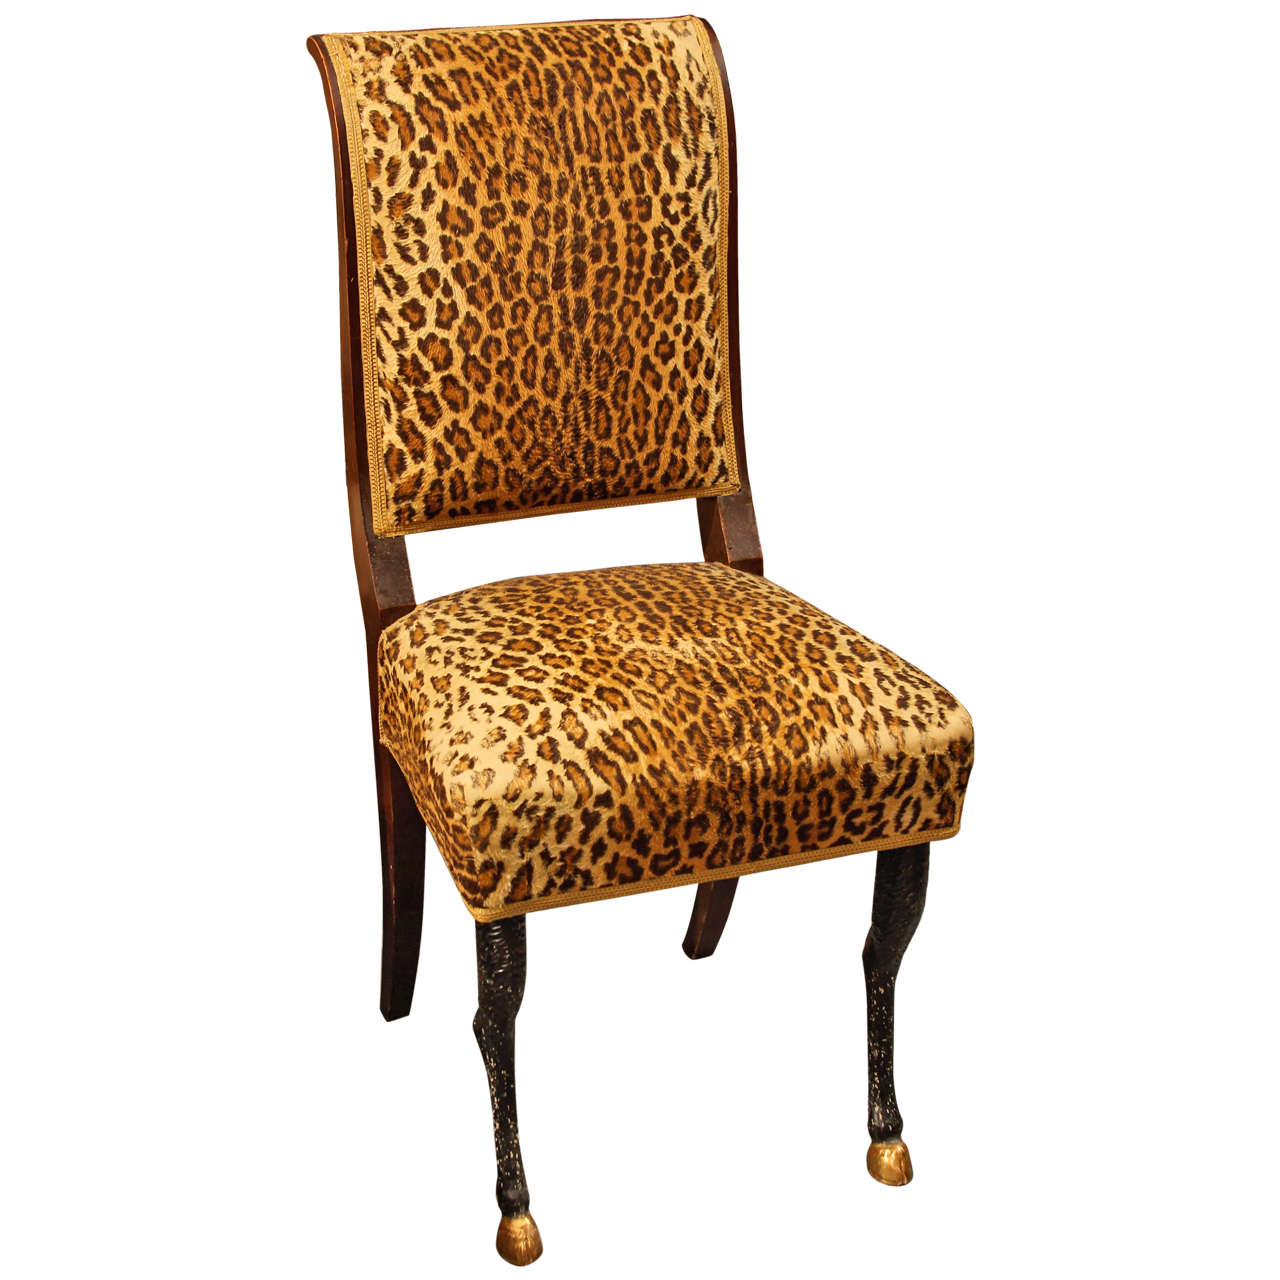 Cheetah Chair Faux Leopard Chair At 1stdibs